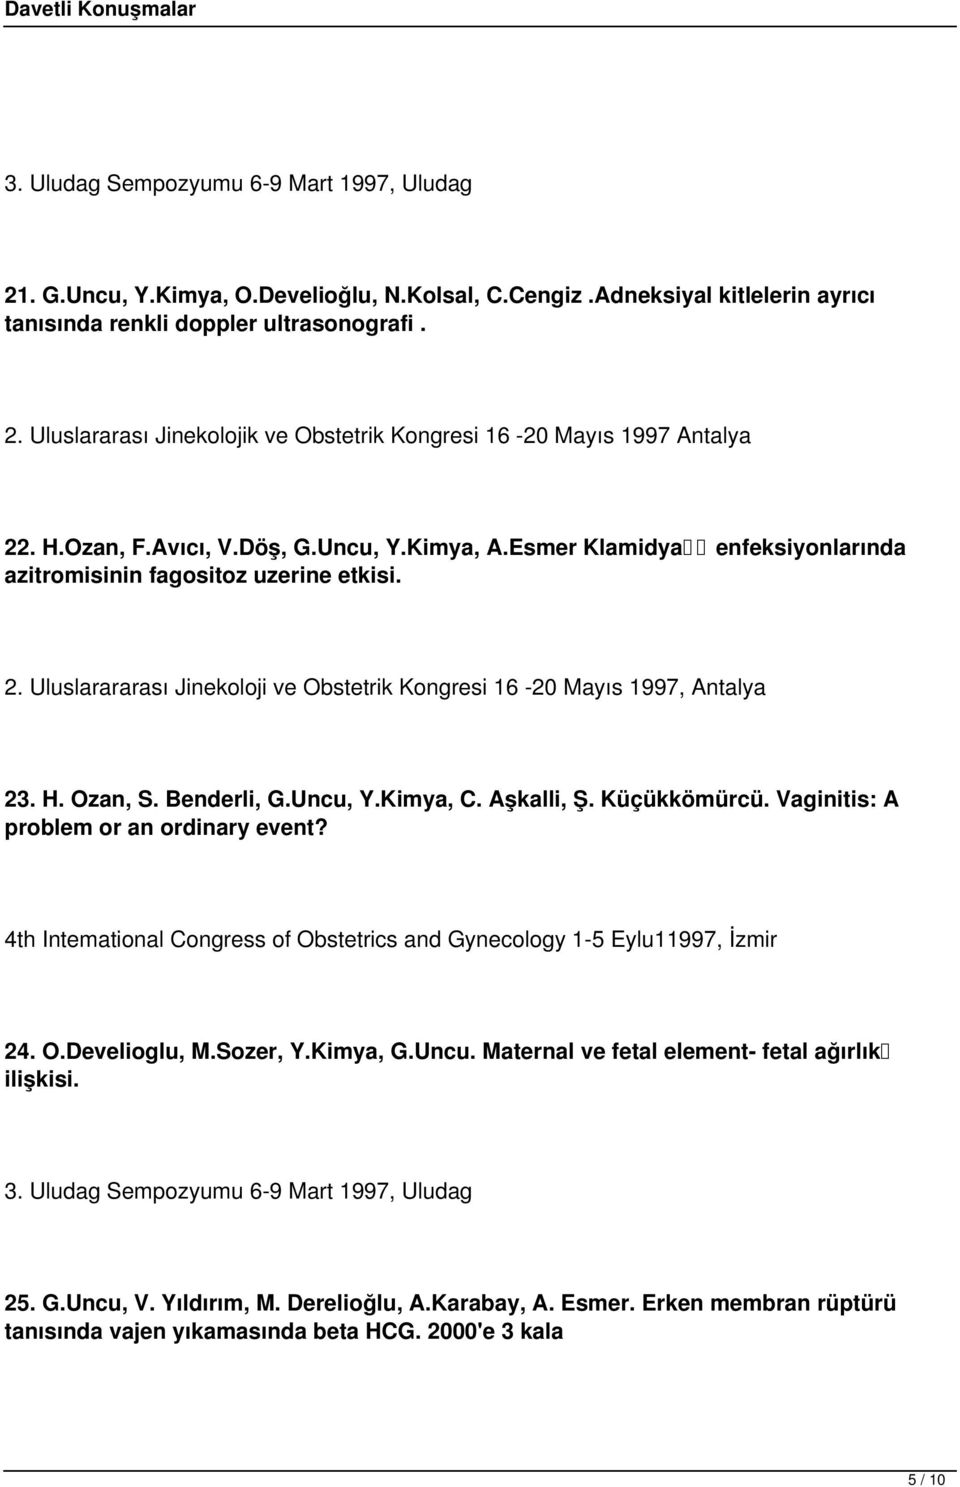 Ozan, S. Benderli, G.Uncu, Y.Kimya, C. Aşkalli, Ş. Küçükkömürcü. Vaginitis: A problem or an ordinary event? 4th Intemational Congress of Obstetrics and Gynecology 1-5 Eylu11997, İzmir 24. O.Develioglu, M.